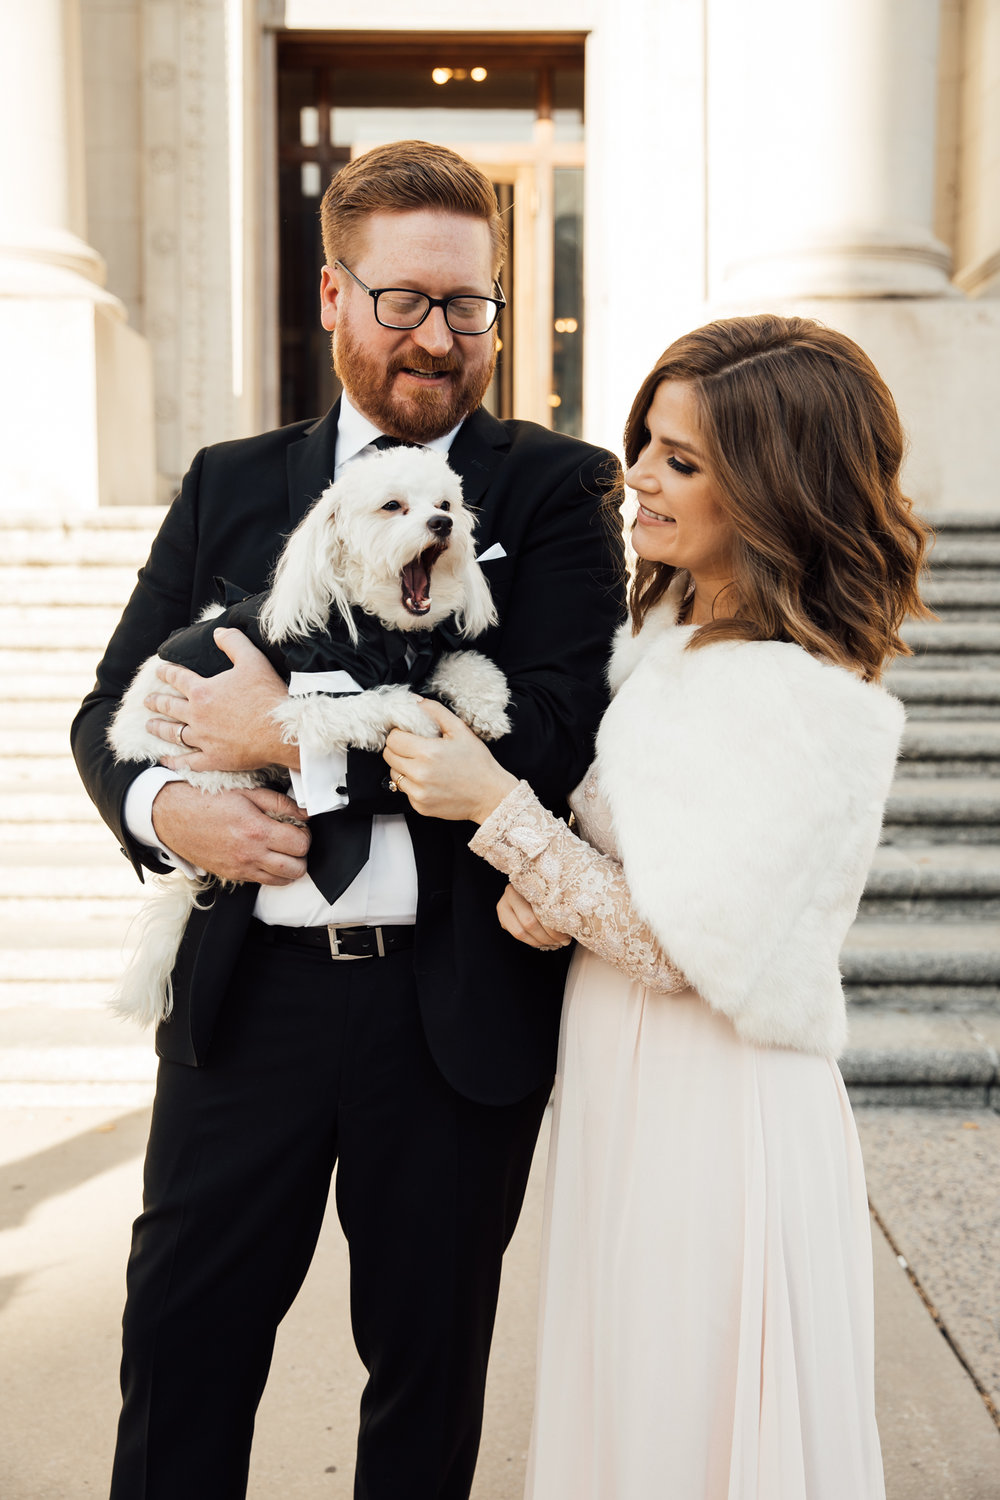 memphis-courthouse-elopement-thewarmtharoundyou-amanda-michael (112 of 143).jpg